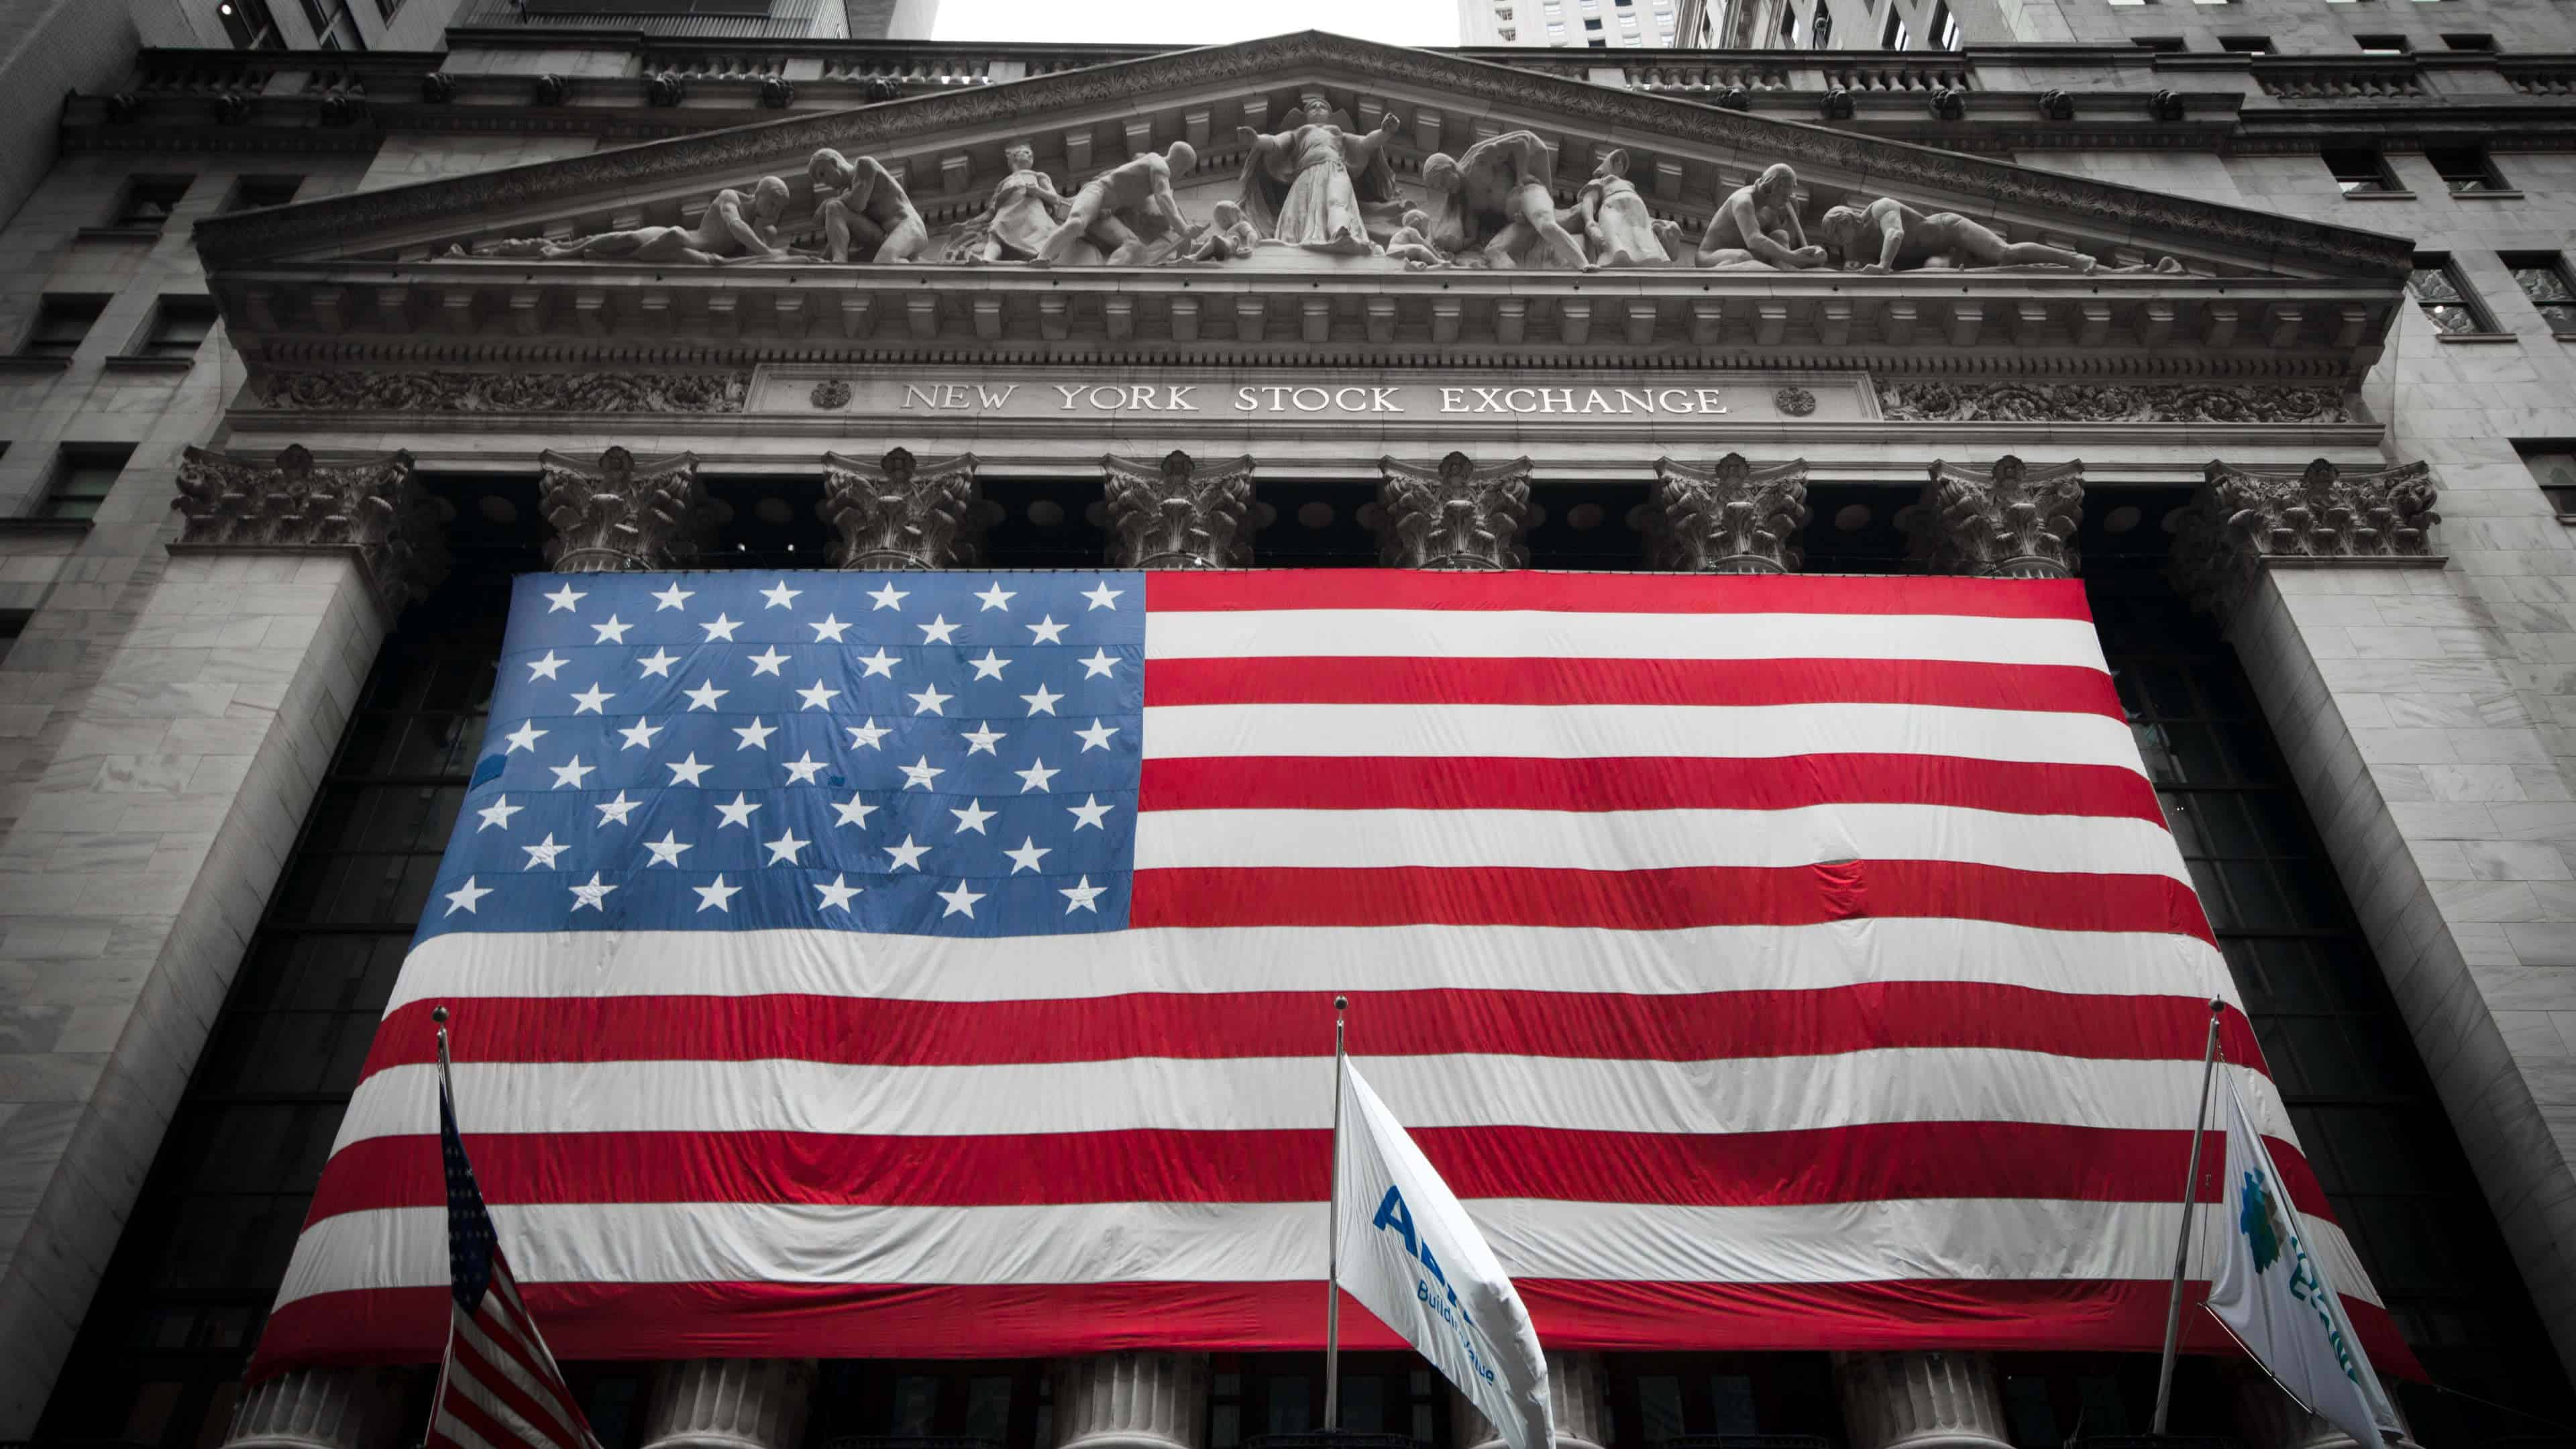 Ultra Hd Desktop Wallpapers New York Stock Exchange Nyse United States Uhd 4k